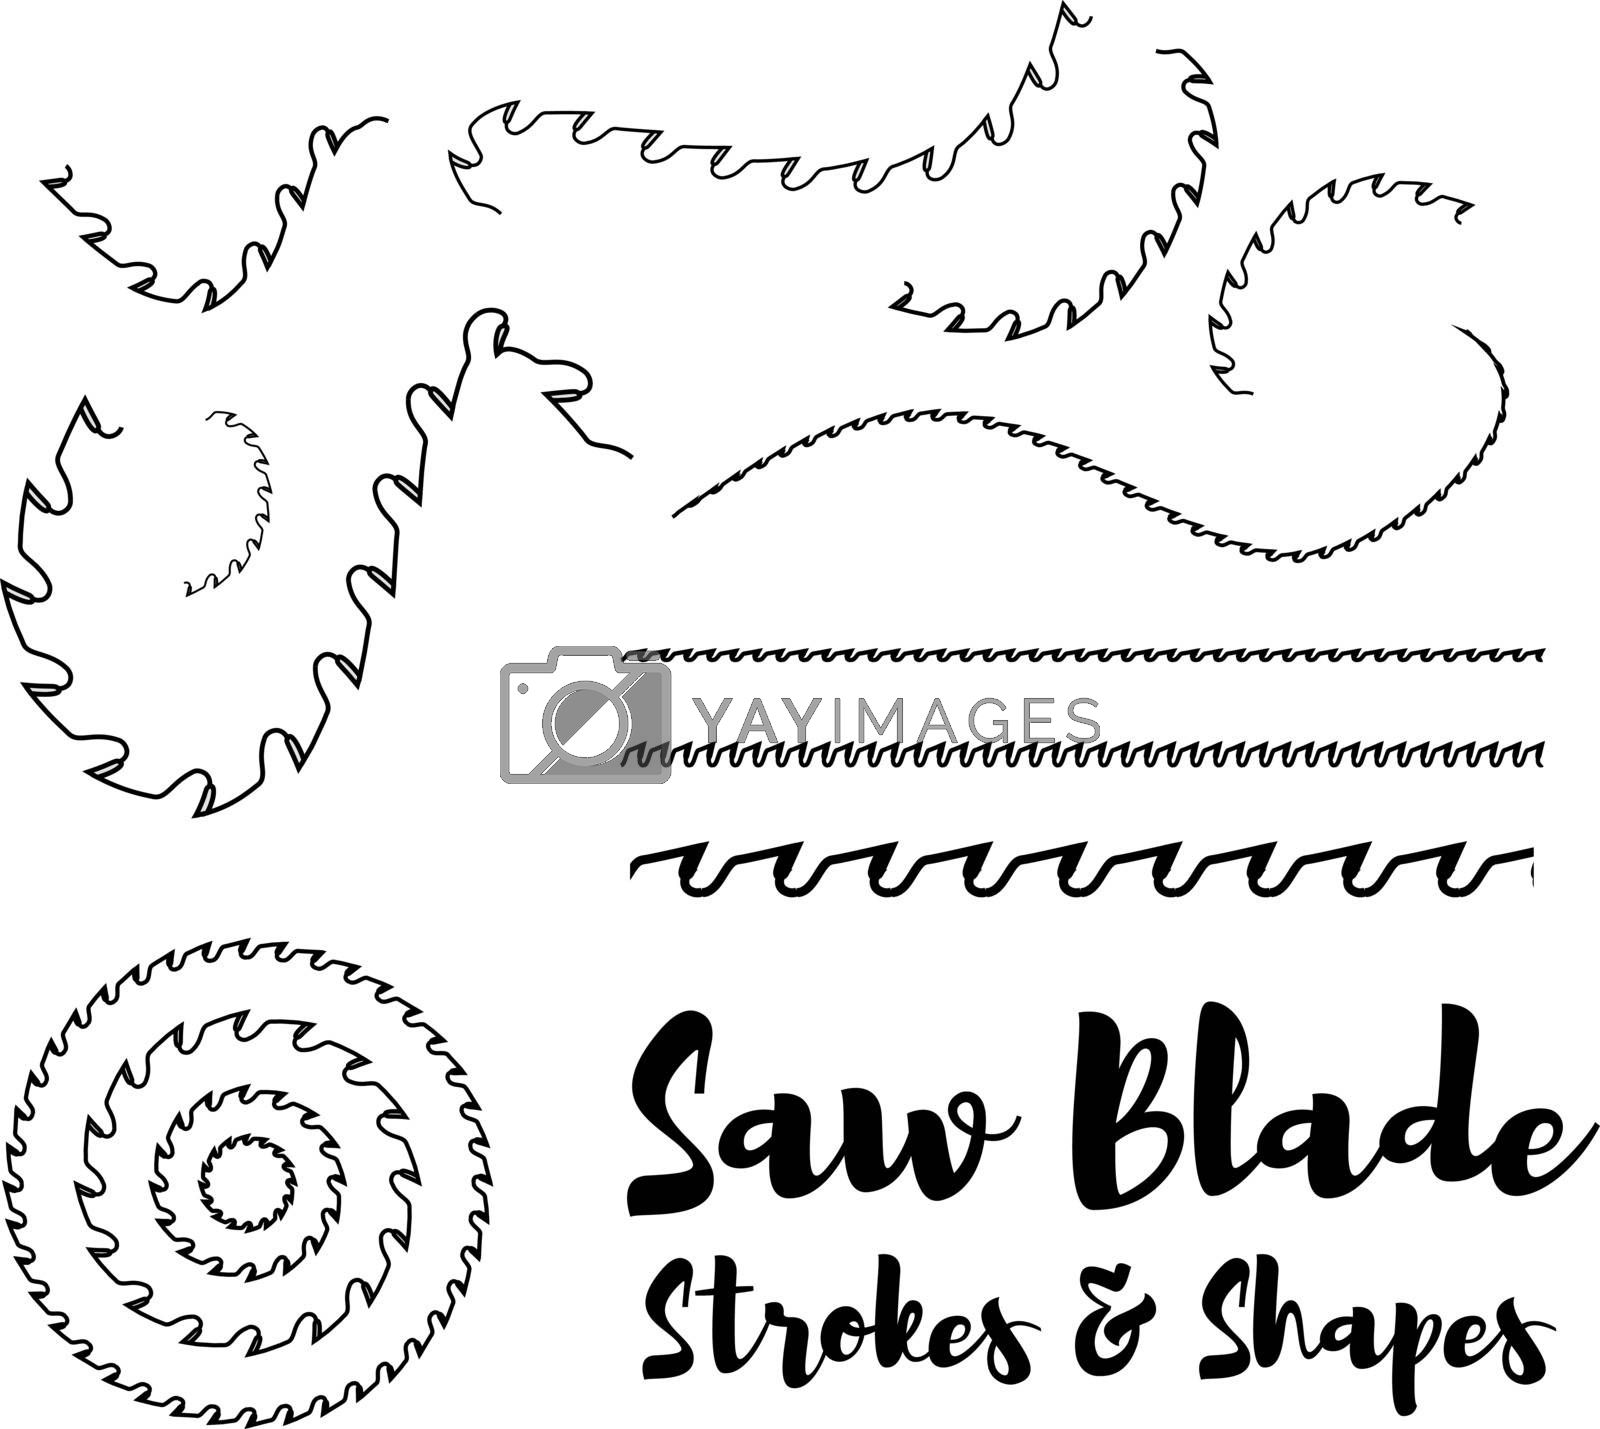 Circular saw blade strokes and shapes on white background. Vector illustration